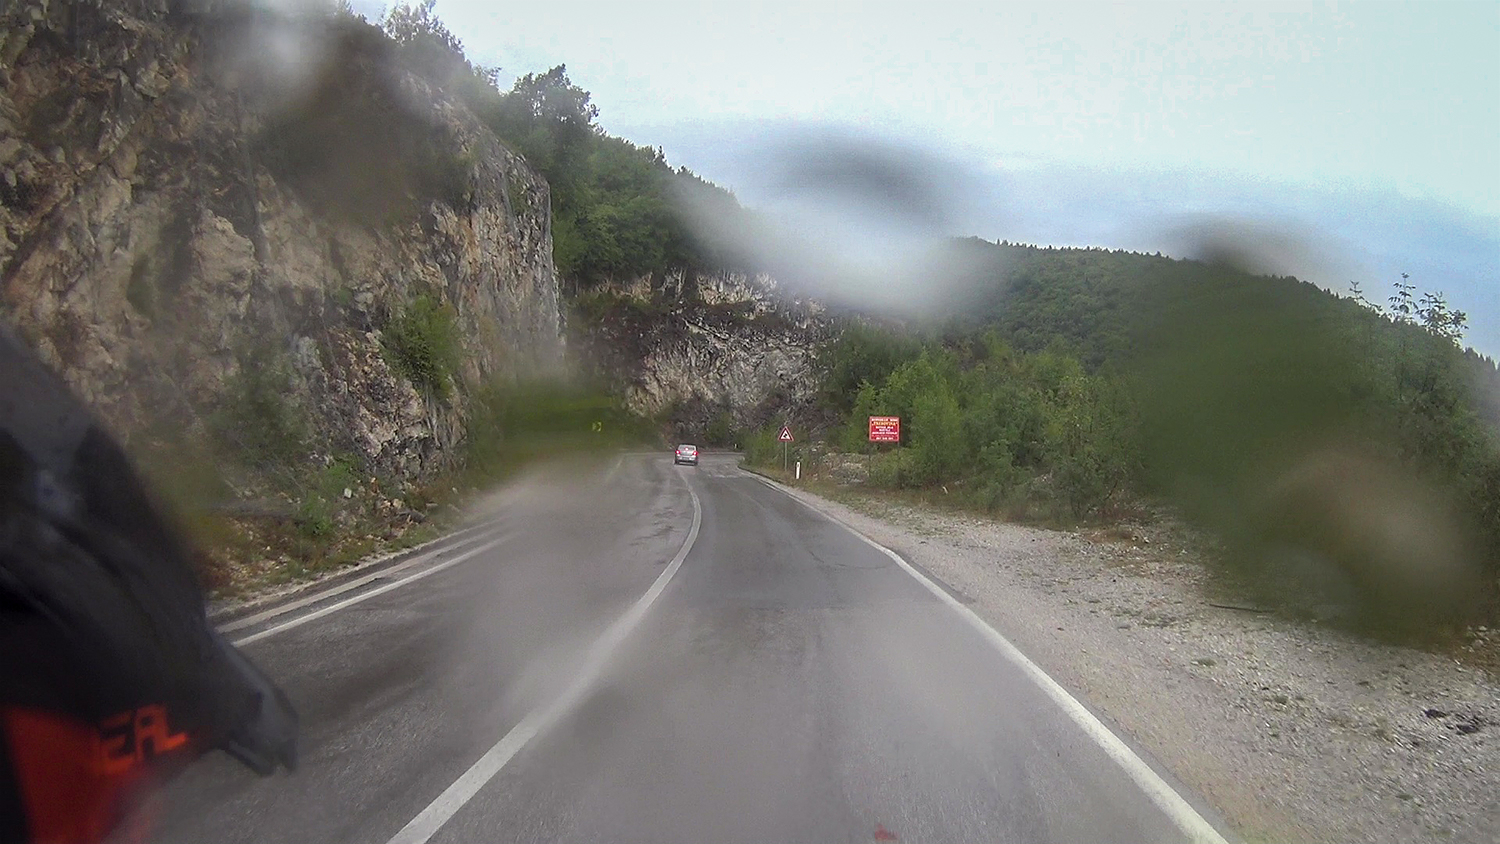 Rain on road P4 from Pljevlja to Zabljak